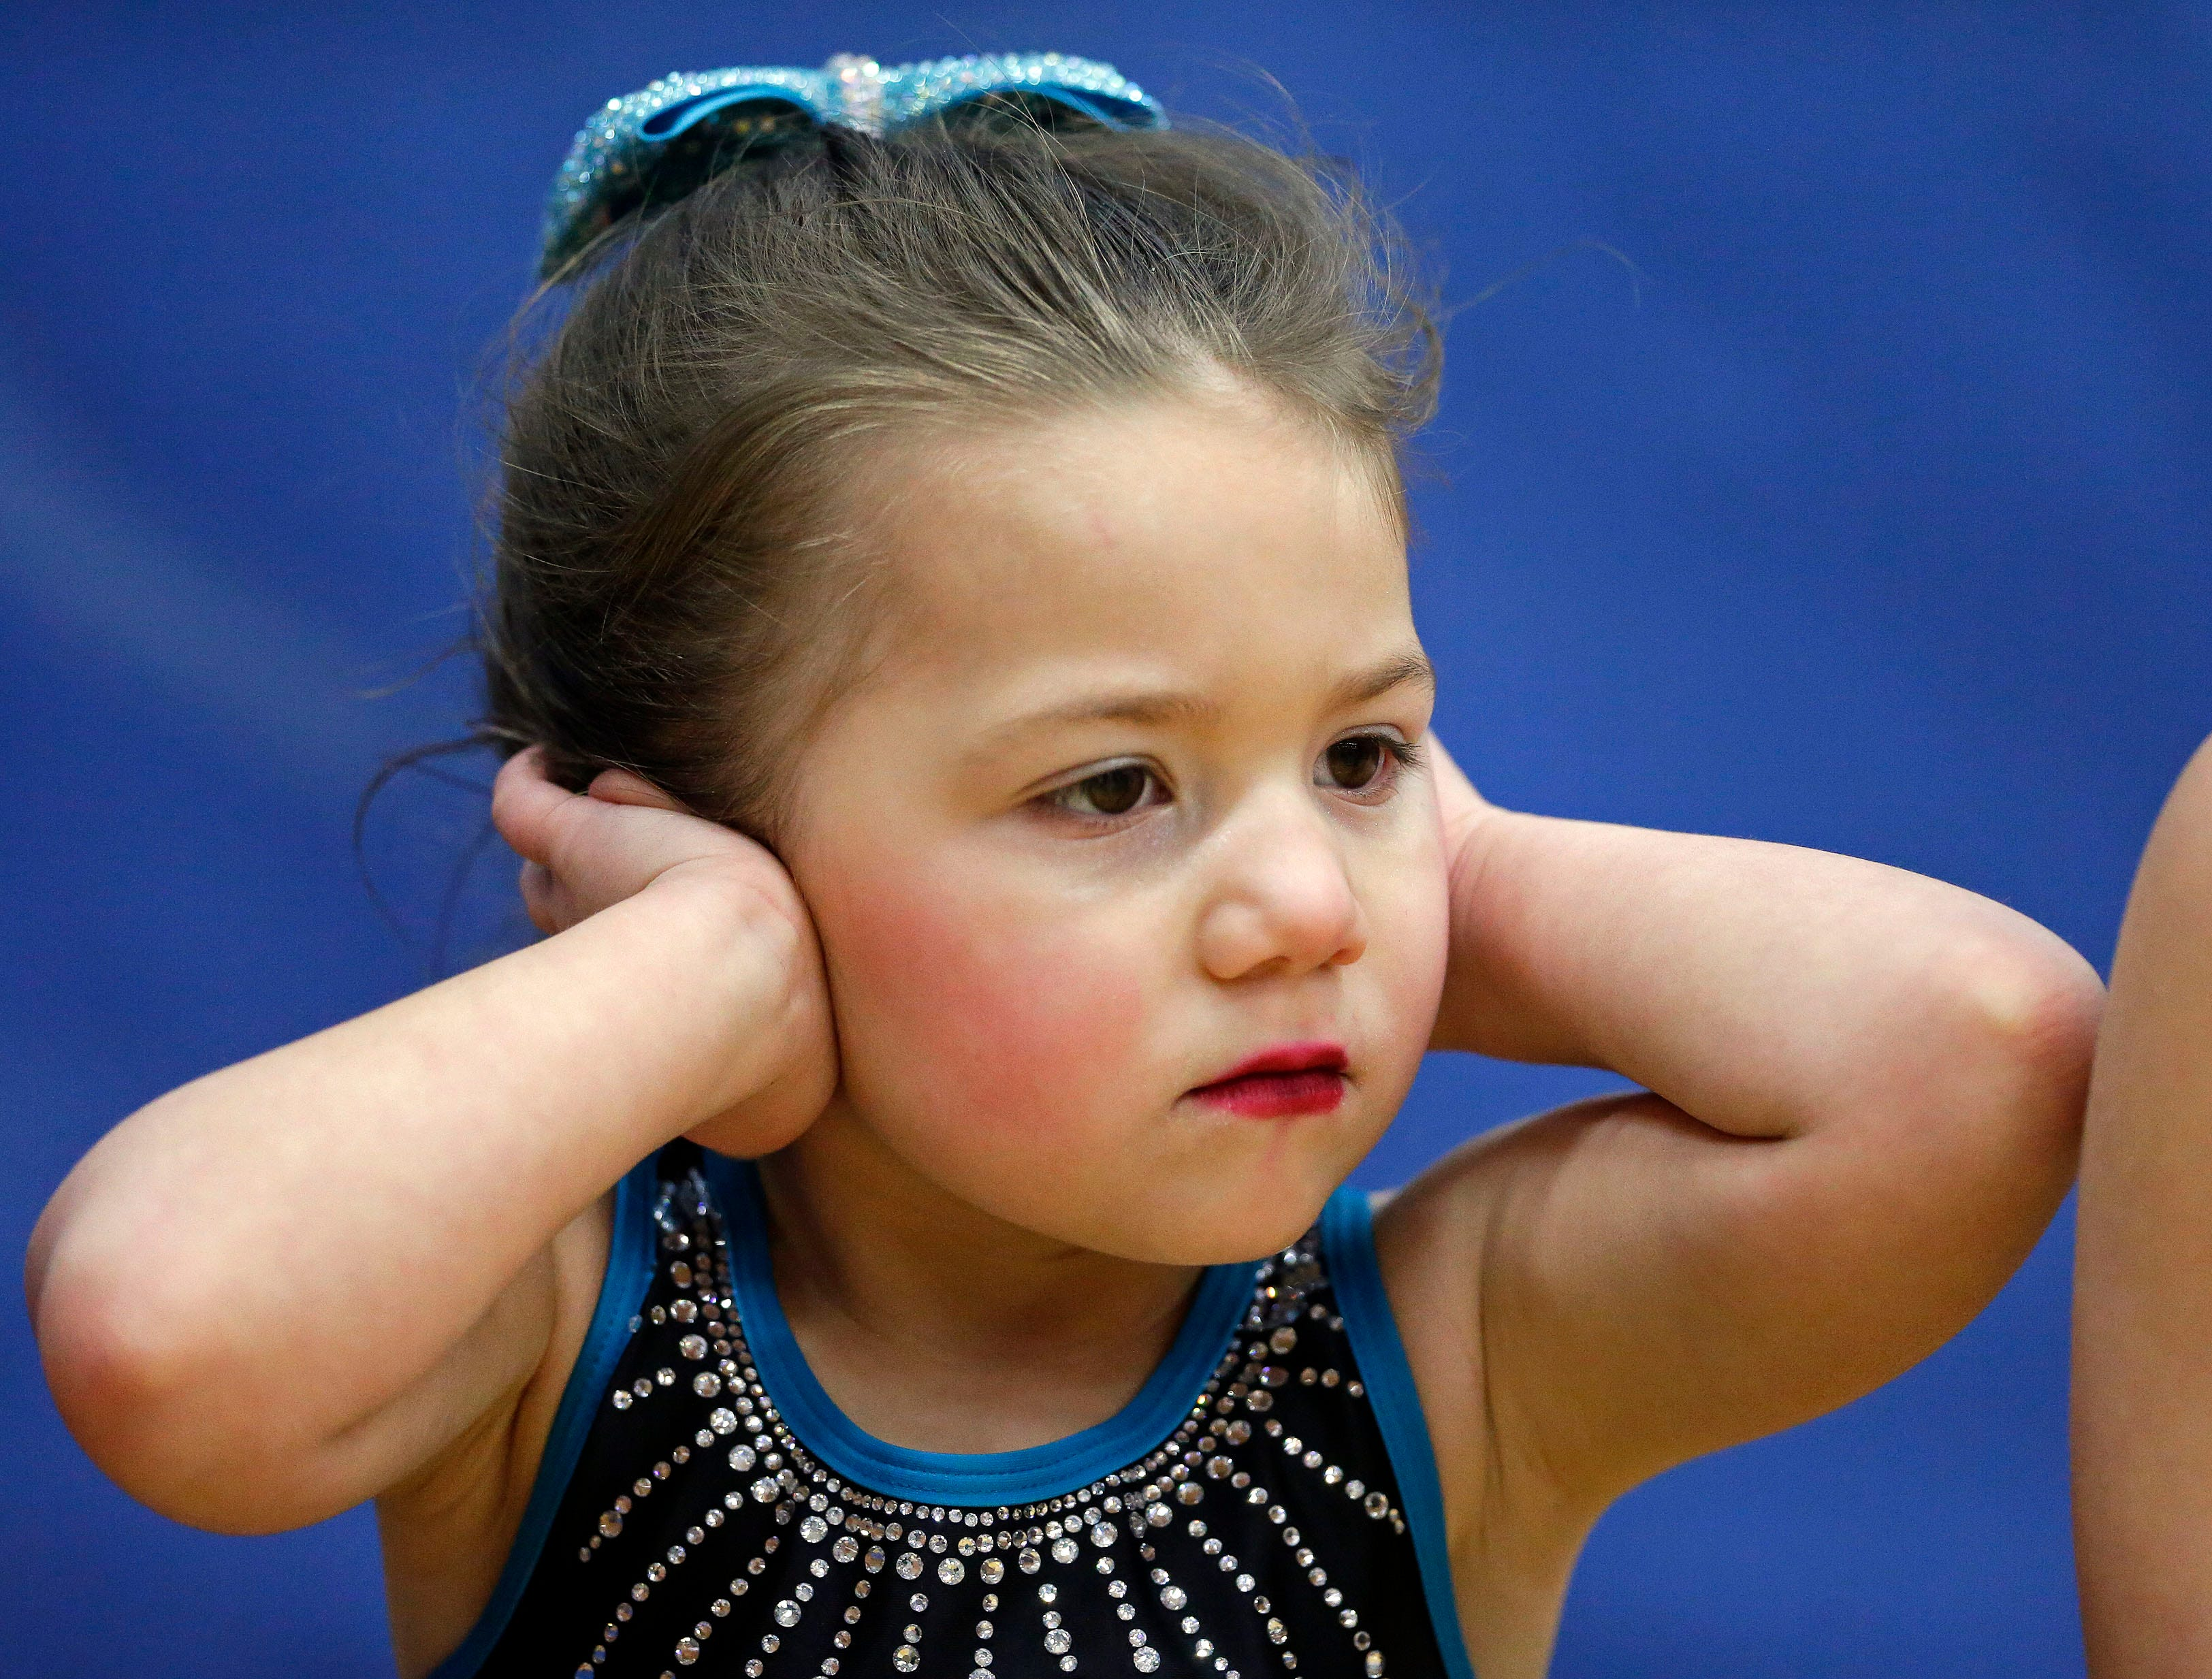 A member of the WIDC Penguins covers her ears as she waits to compete in the Lightning Bolt Explosion Cheer and Dance competition Saturday, January 5, 2019, at Appleton North High School in Appleton, Wis.Ron Page/USA TODAY NETWORK-Wisconsin